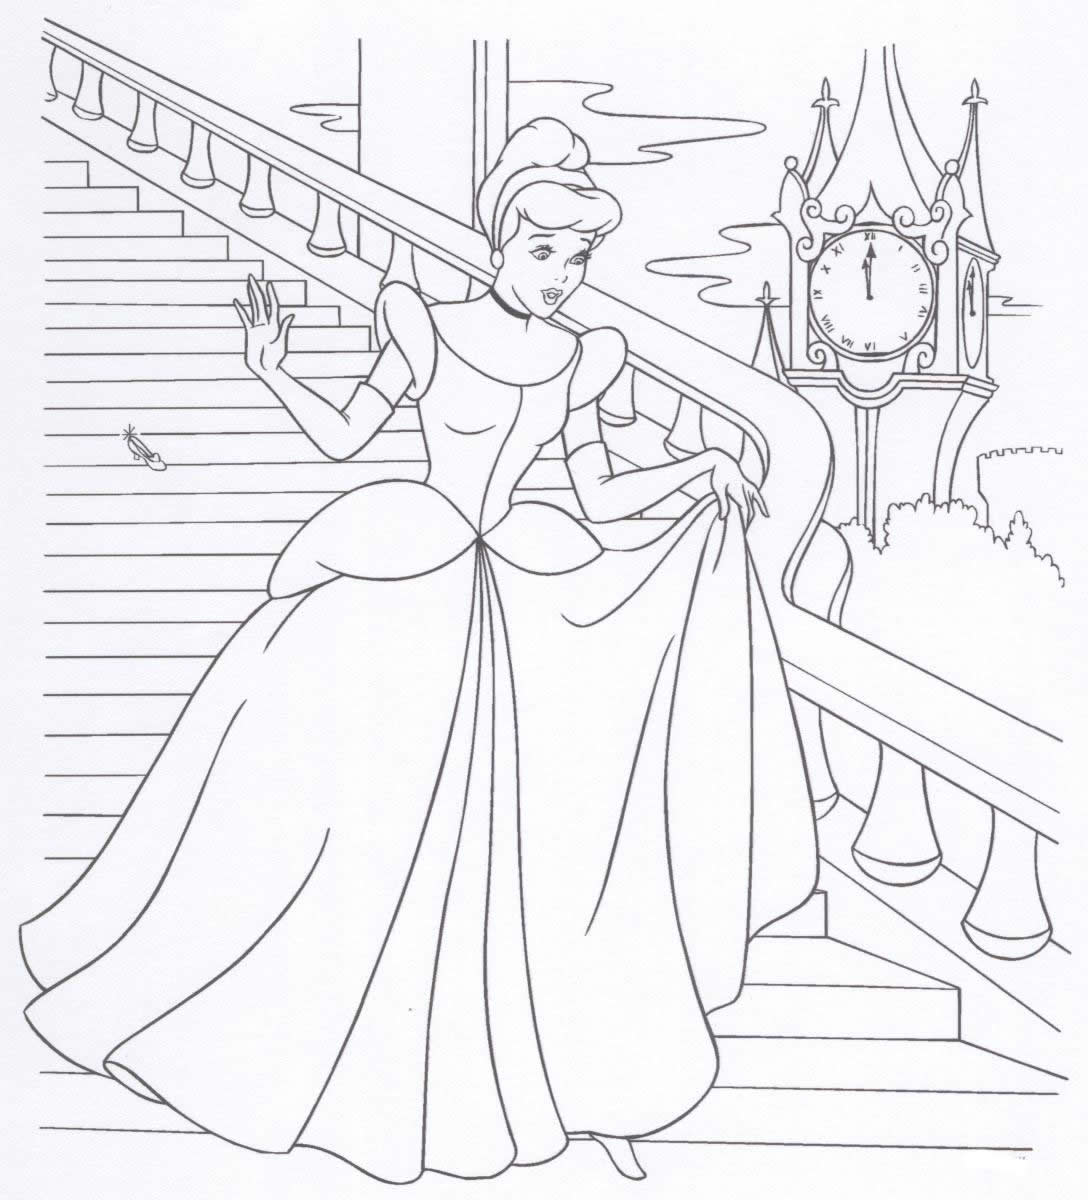 a coloring pages - photo#44